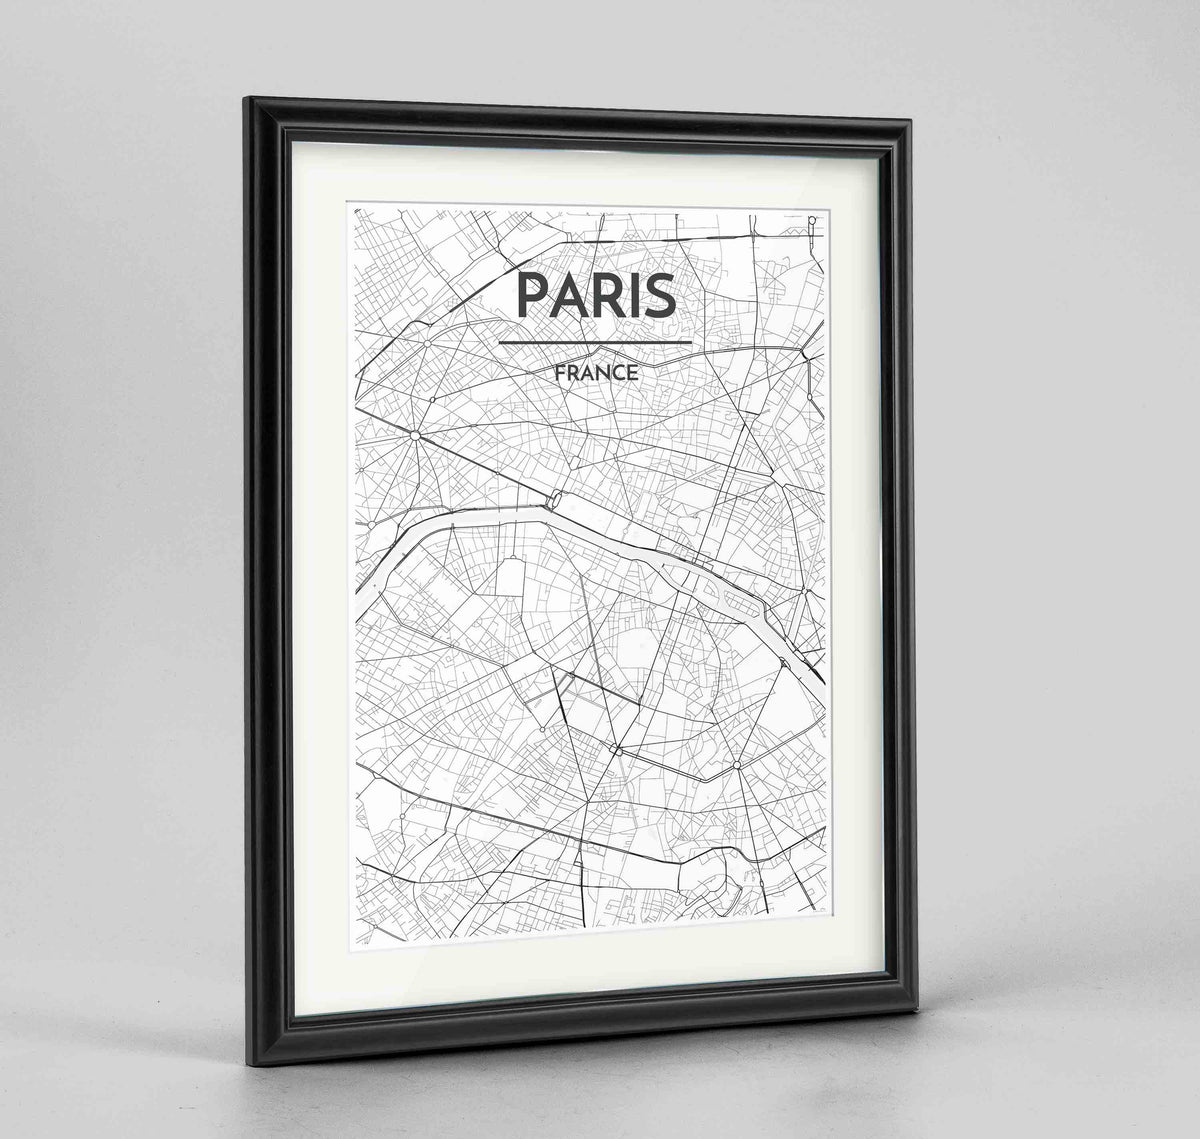 "Framed Paris Map Art Print 24x36"" Traditional Black frame Point Two Design Group"